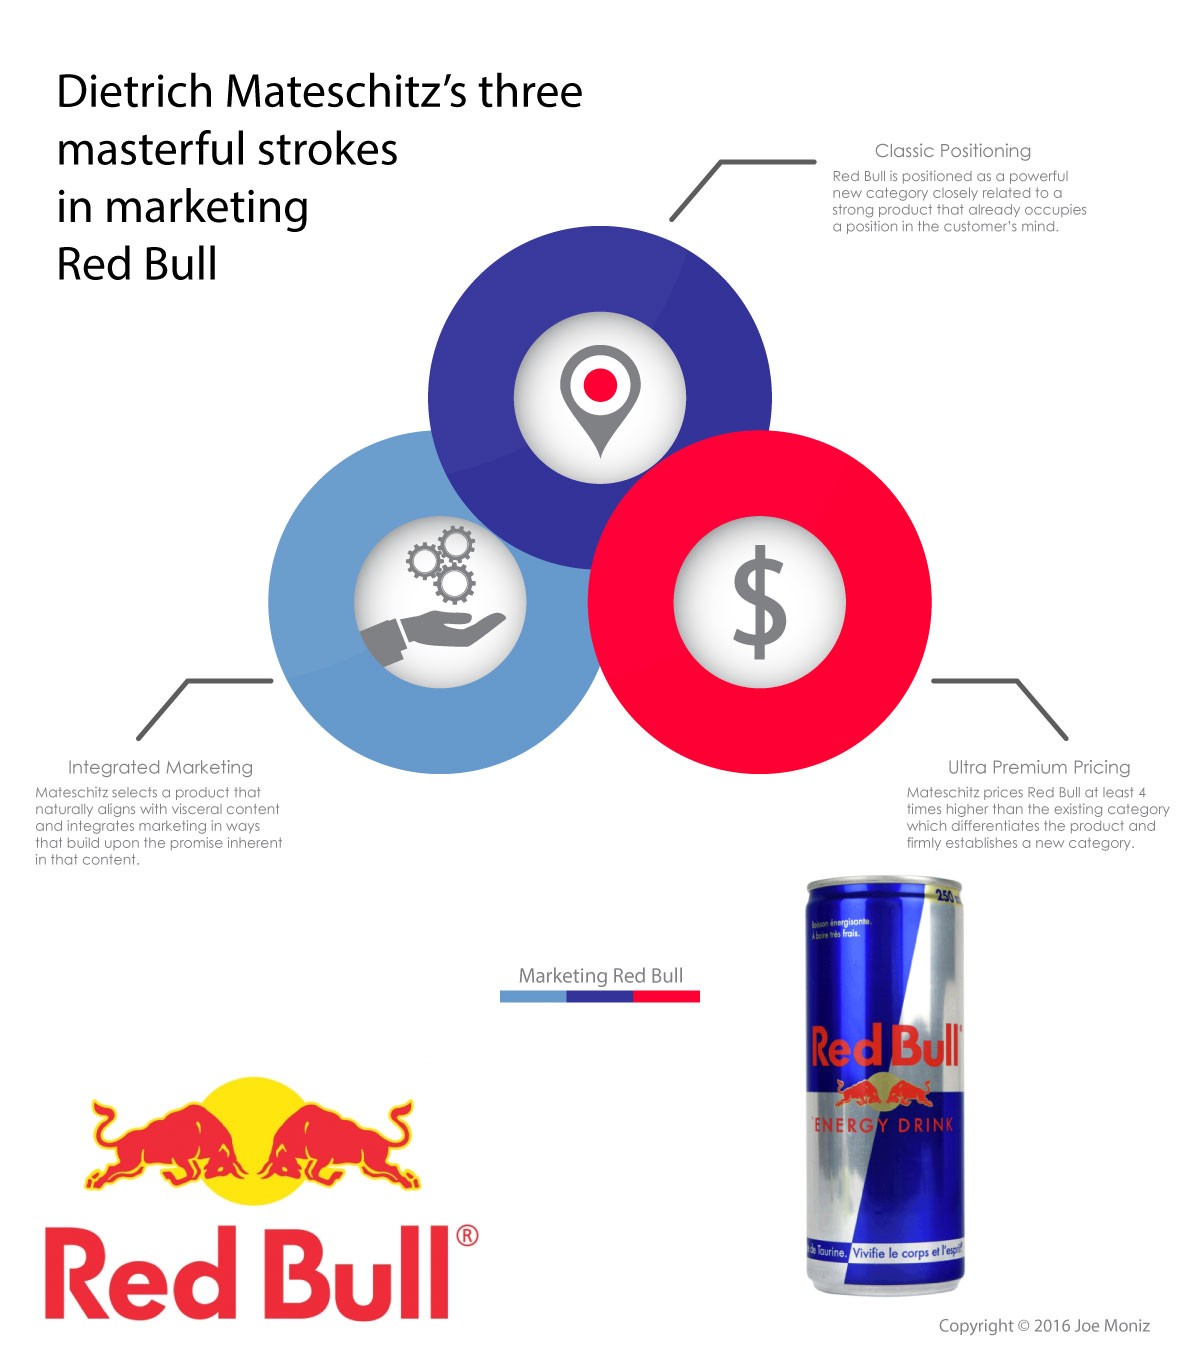 marketing and red bull essay Essays & papers marketing marketing strategy of red bull marketing strategy of red bull essay one of the main questions that can be emphasized in respect of this case is the approach to the marketing strategy of red bull.